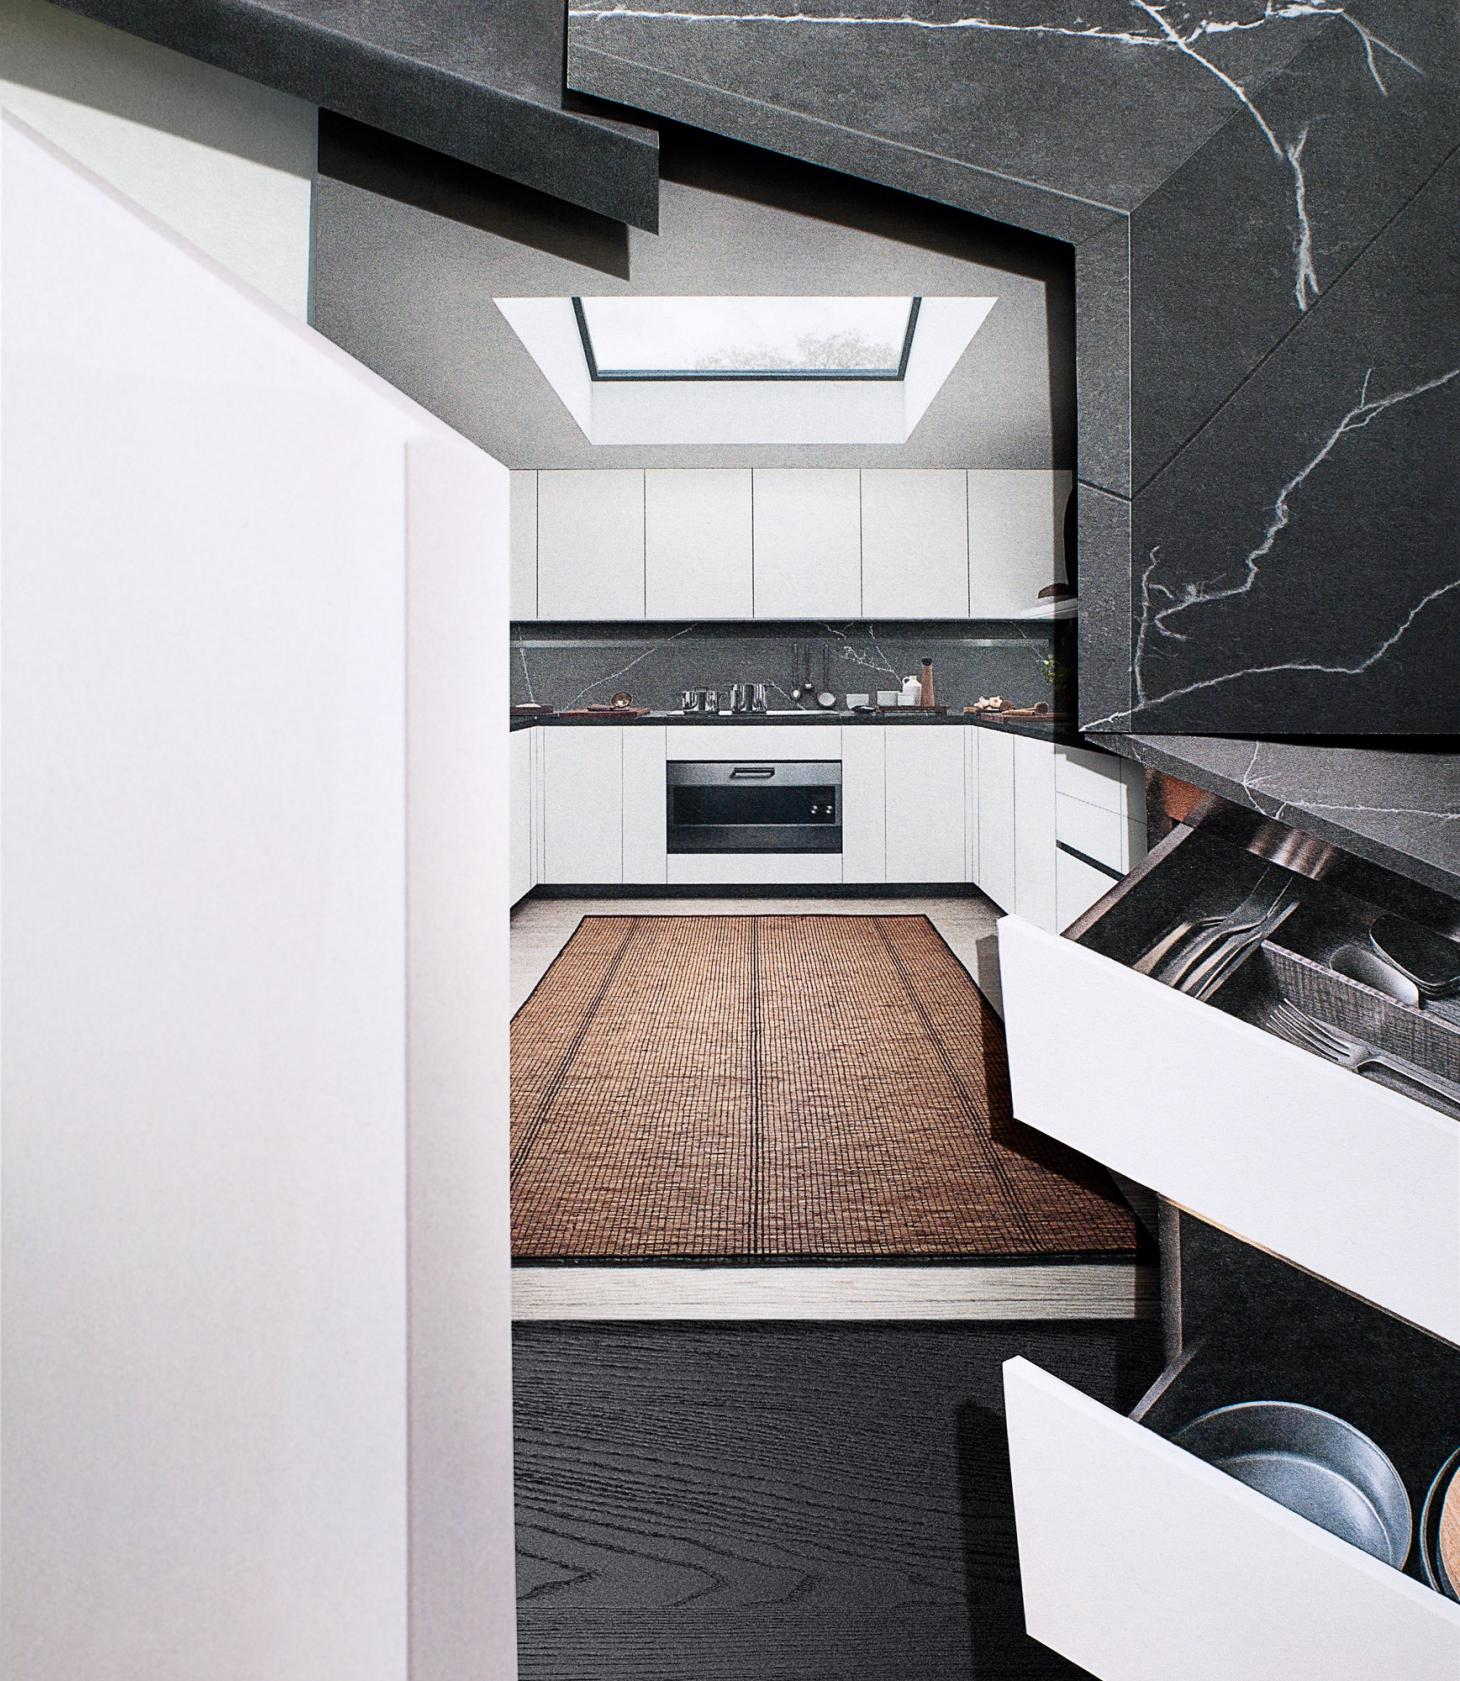 A collage of layered images showing the 'Thea' kitchen by Arclinea, featuring handle free white cupboards